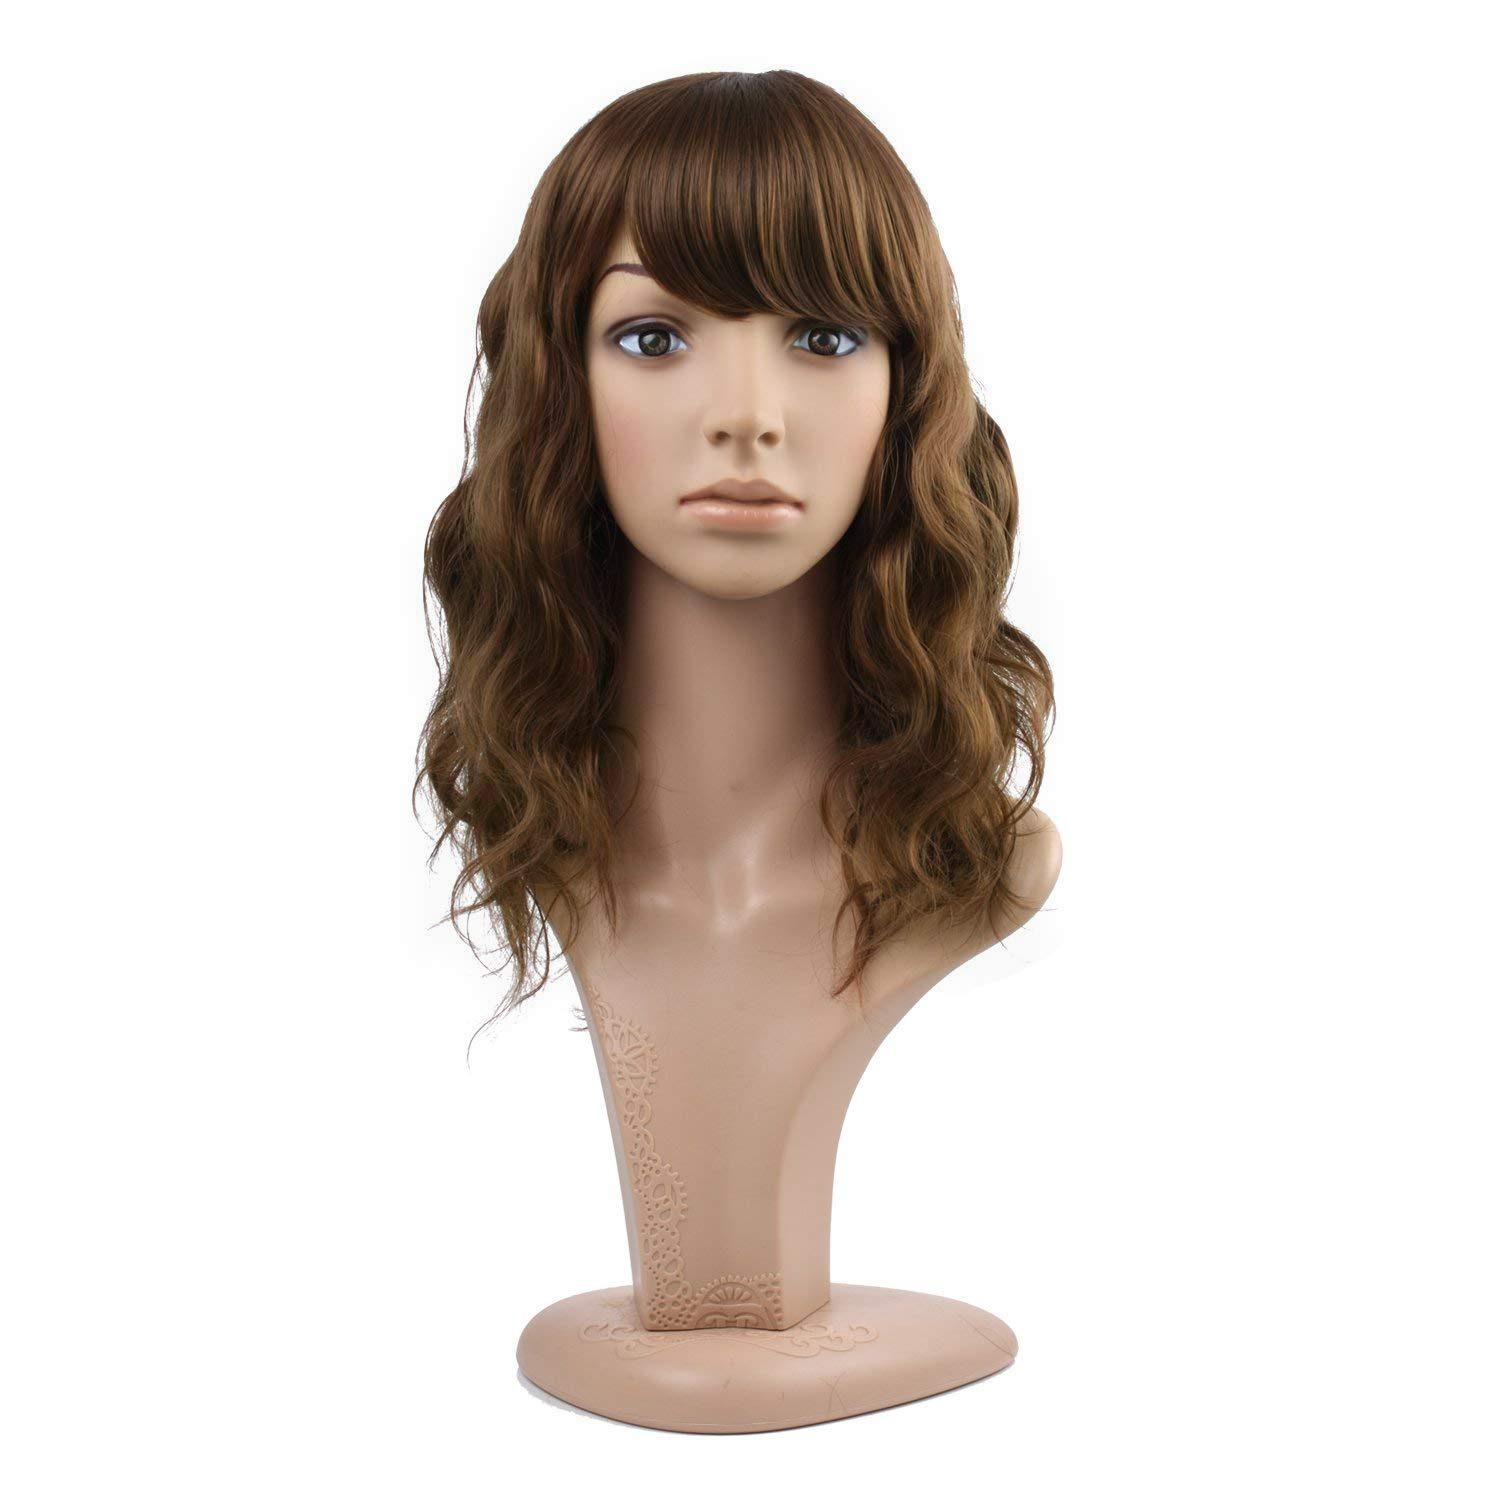 MelodySusie Mid Length Curly Wavy Wig for Women, 17 inches Hair Replacements Wig with Bang, Synthetic Fiber, Natural as Human Hair, for Daily Halloween Cosplay Costume, Wig Cap Included, Light Brown by MelodySusie